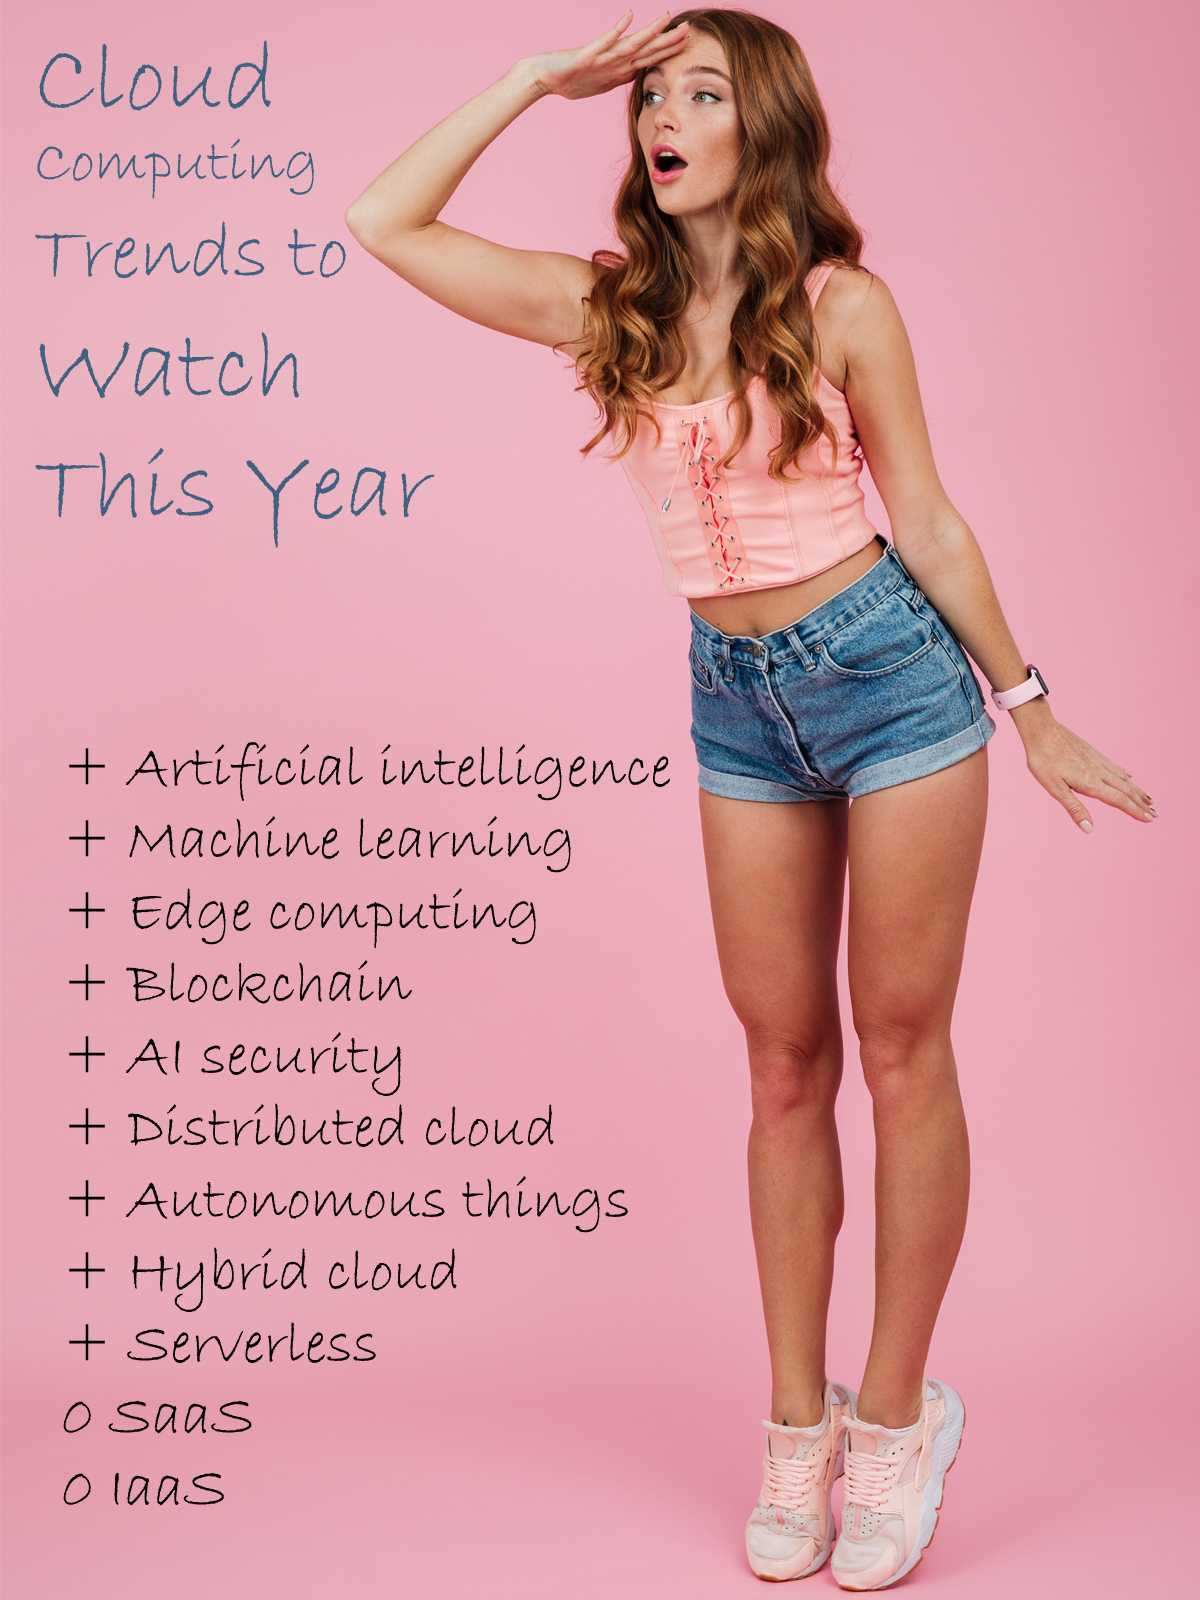 Cloud Computing Trends to Watch This Year